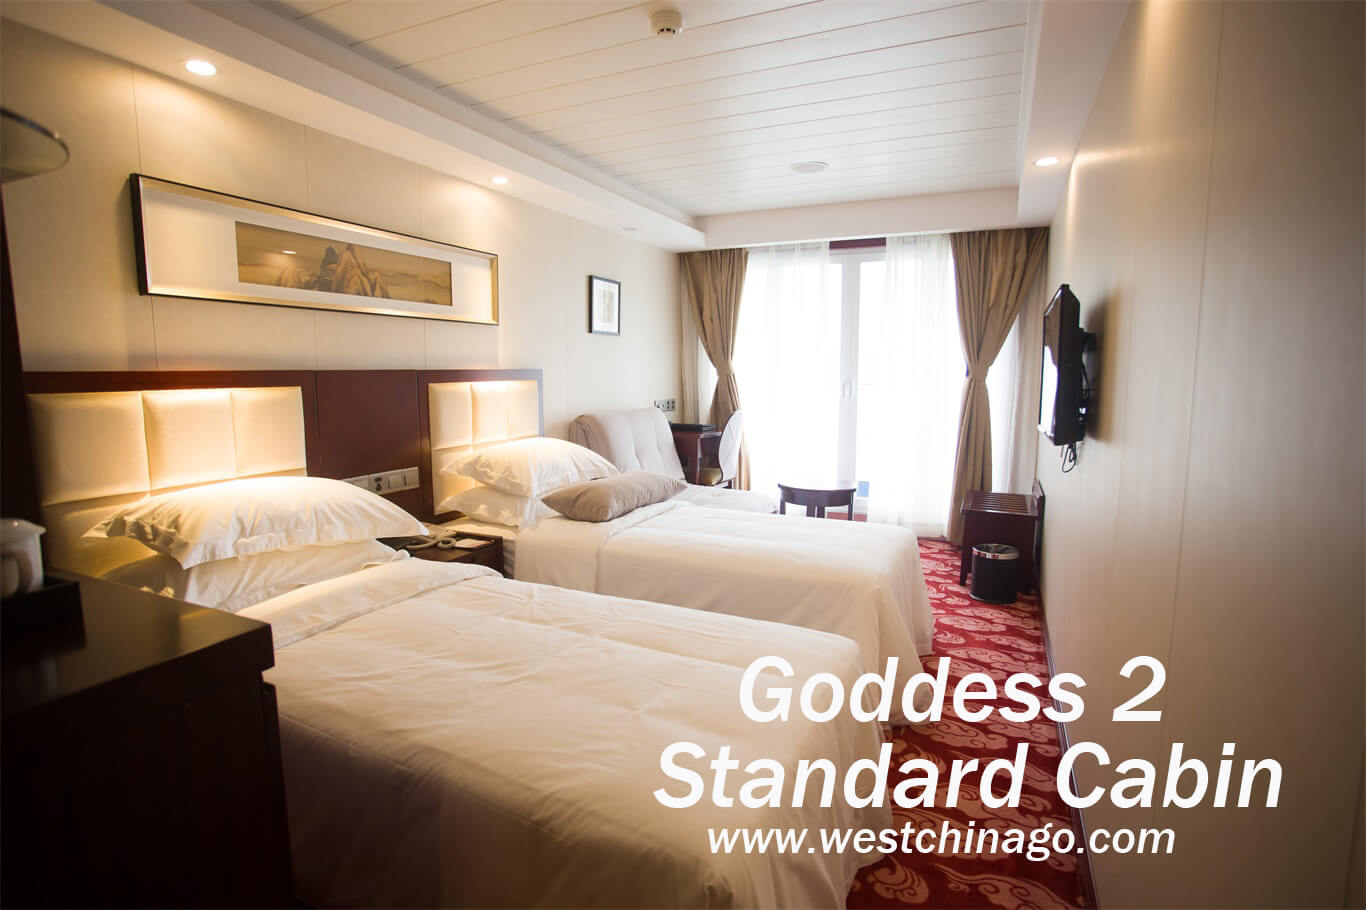 Yangtze River Cruise goddess 2